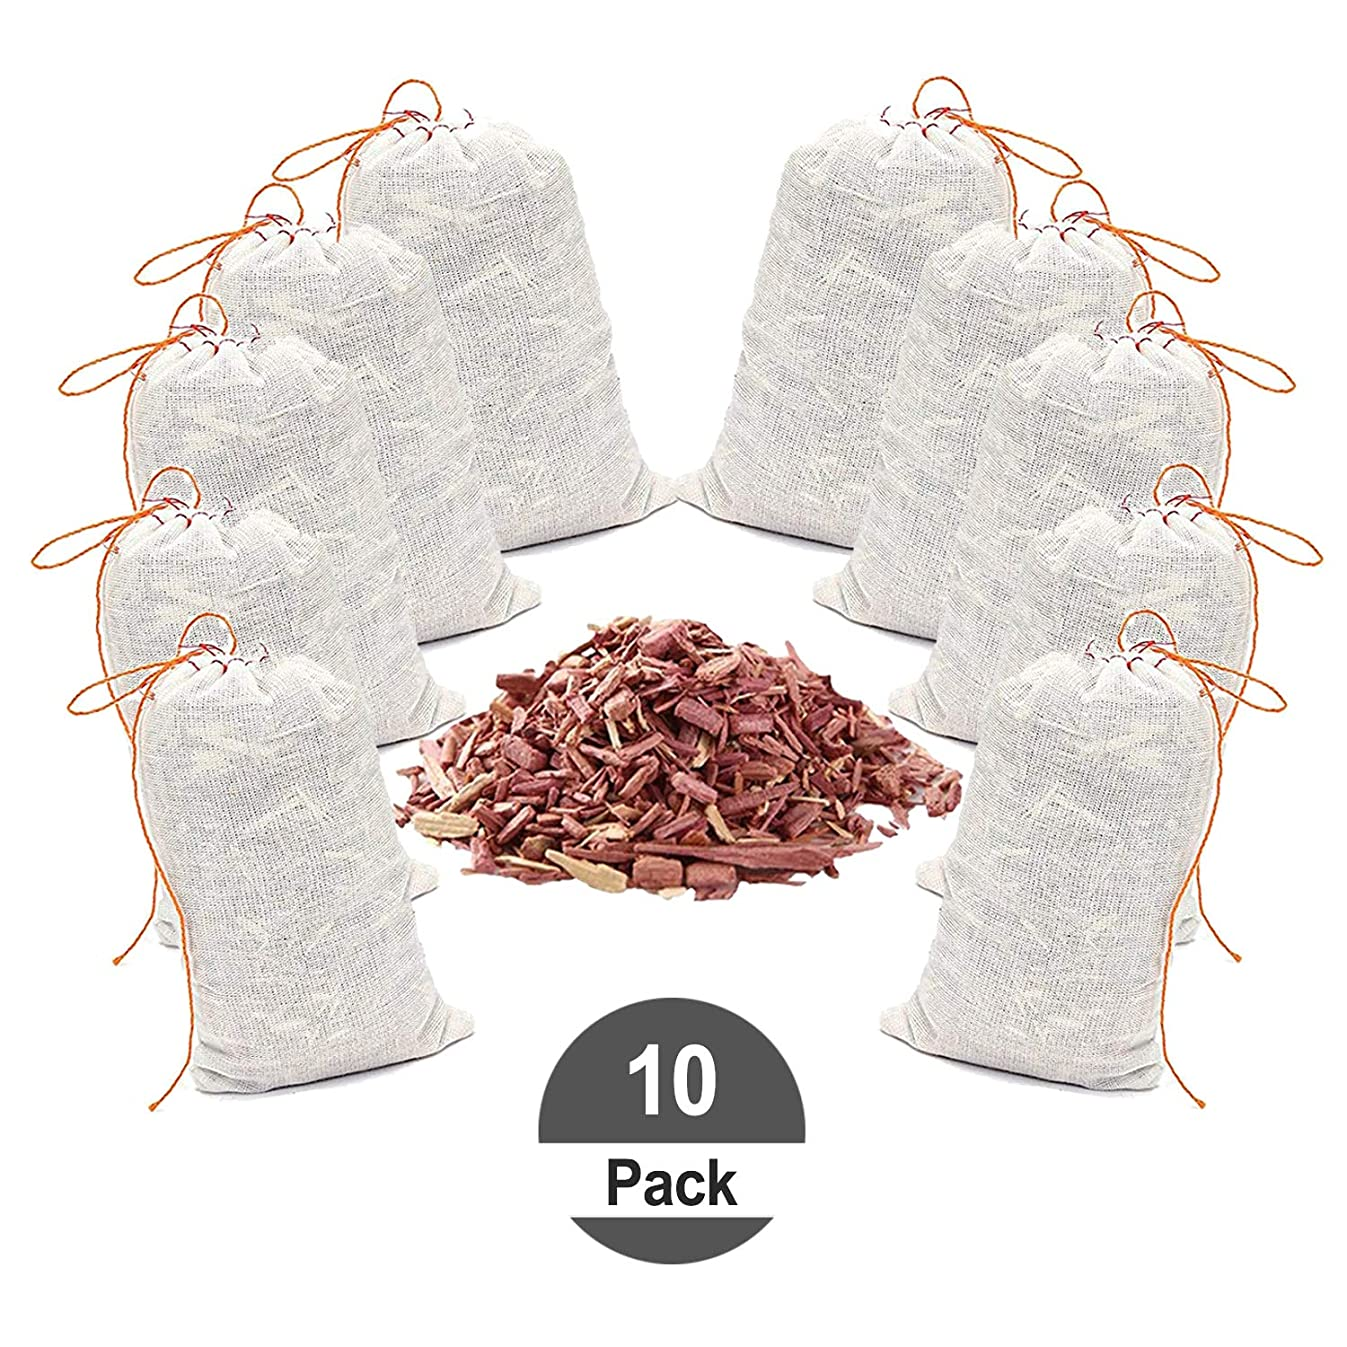 HomeDo 10Pack Cedar Sachet Bags, Natural Red Cedar Chips Sachets for Closets and Drawers, Clothes Storage Protector (Cedar Bags-10Pack) …